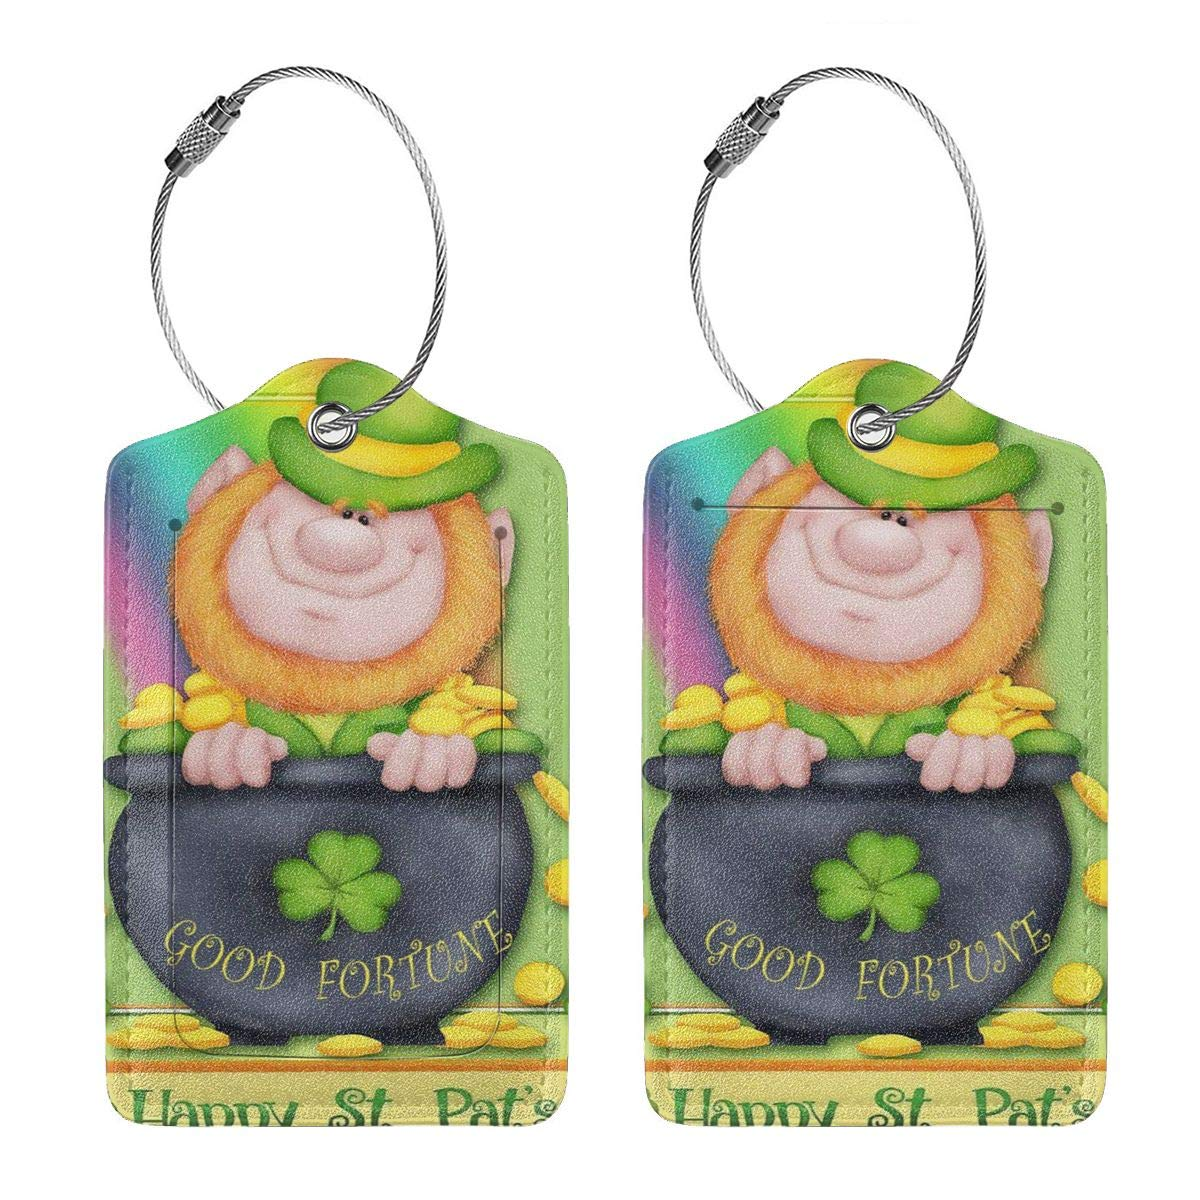 Happy St Patricks Day Irish Leprechaun Good Fortune Leather Luggage Tags Personalized Flexible Custom Travel Tags With Adjustable Strap